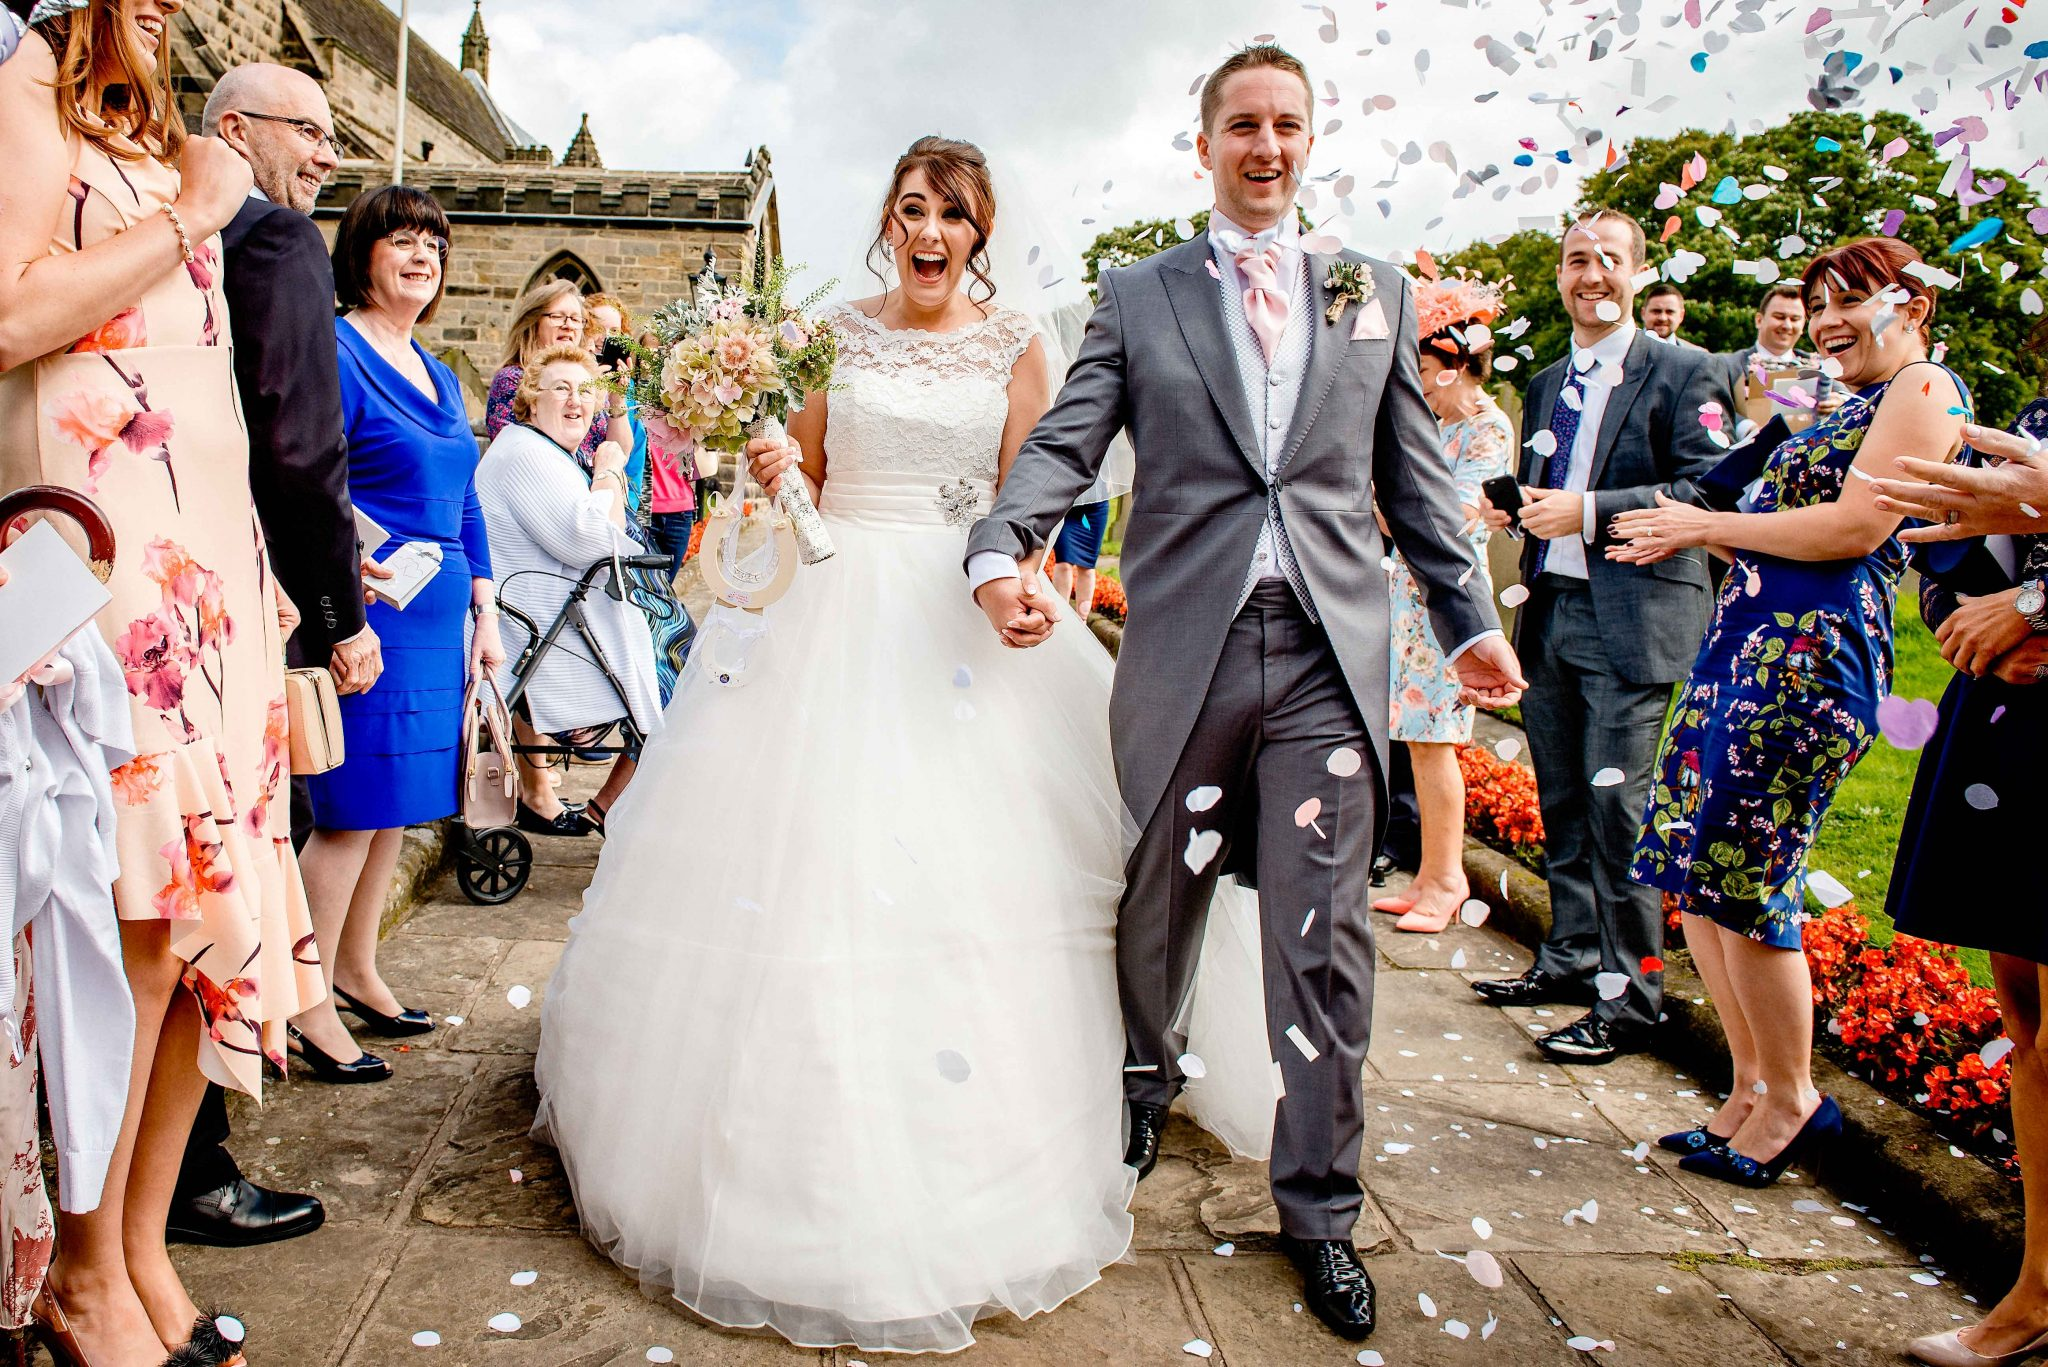 Bride & Groom Confetti - Southport, Liverpool, Lancashire & North West Wedding Photographer - Ollie Gyte Photography